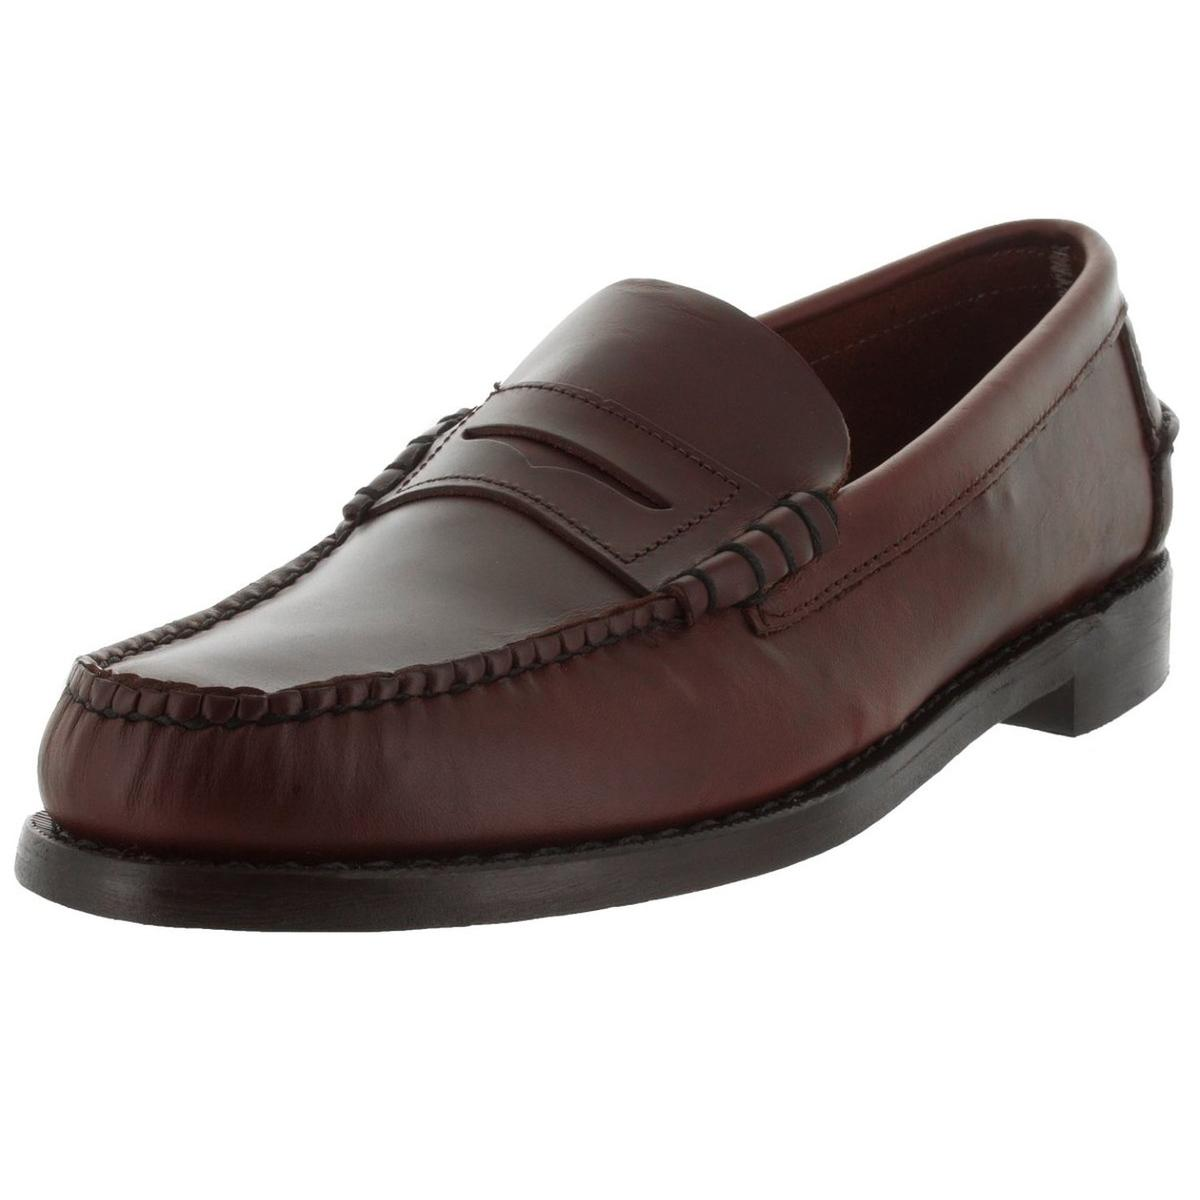 Sebago Men's Classic Brown Oiled Waxy Loafers by Sebago